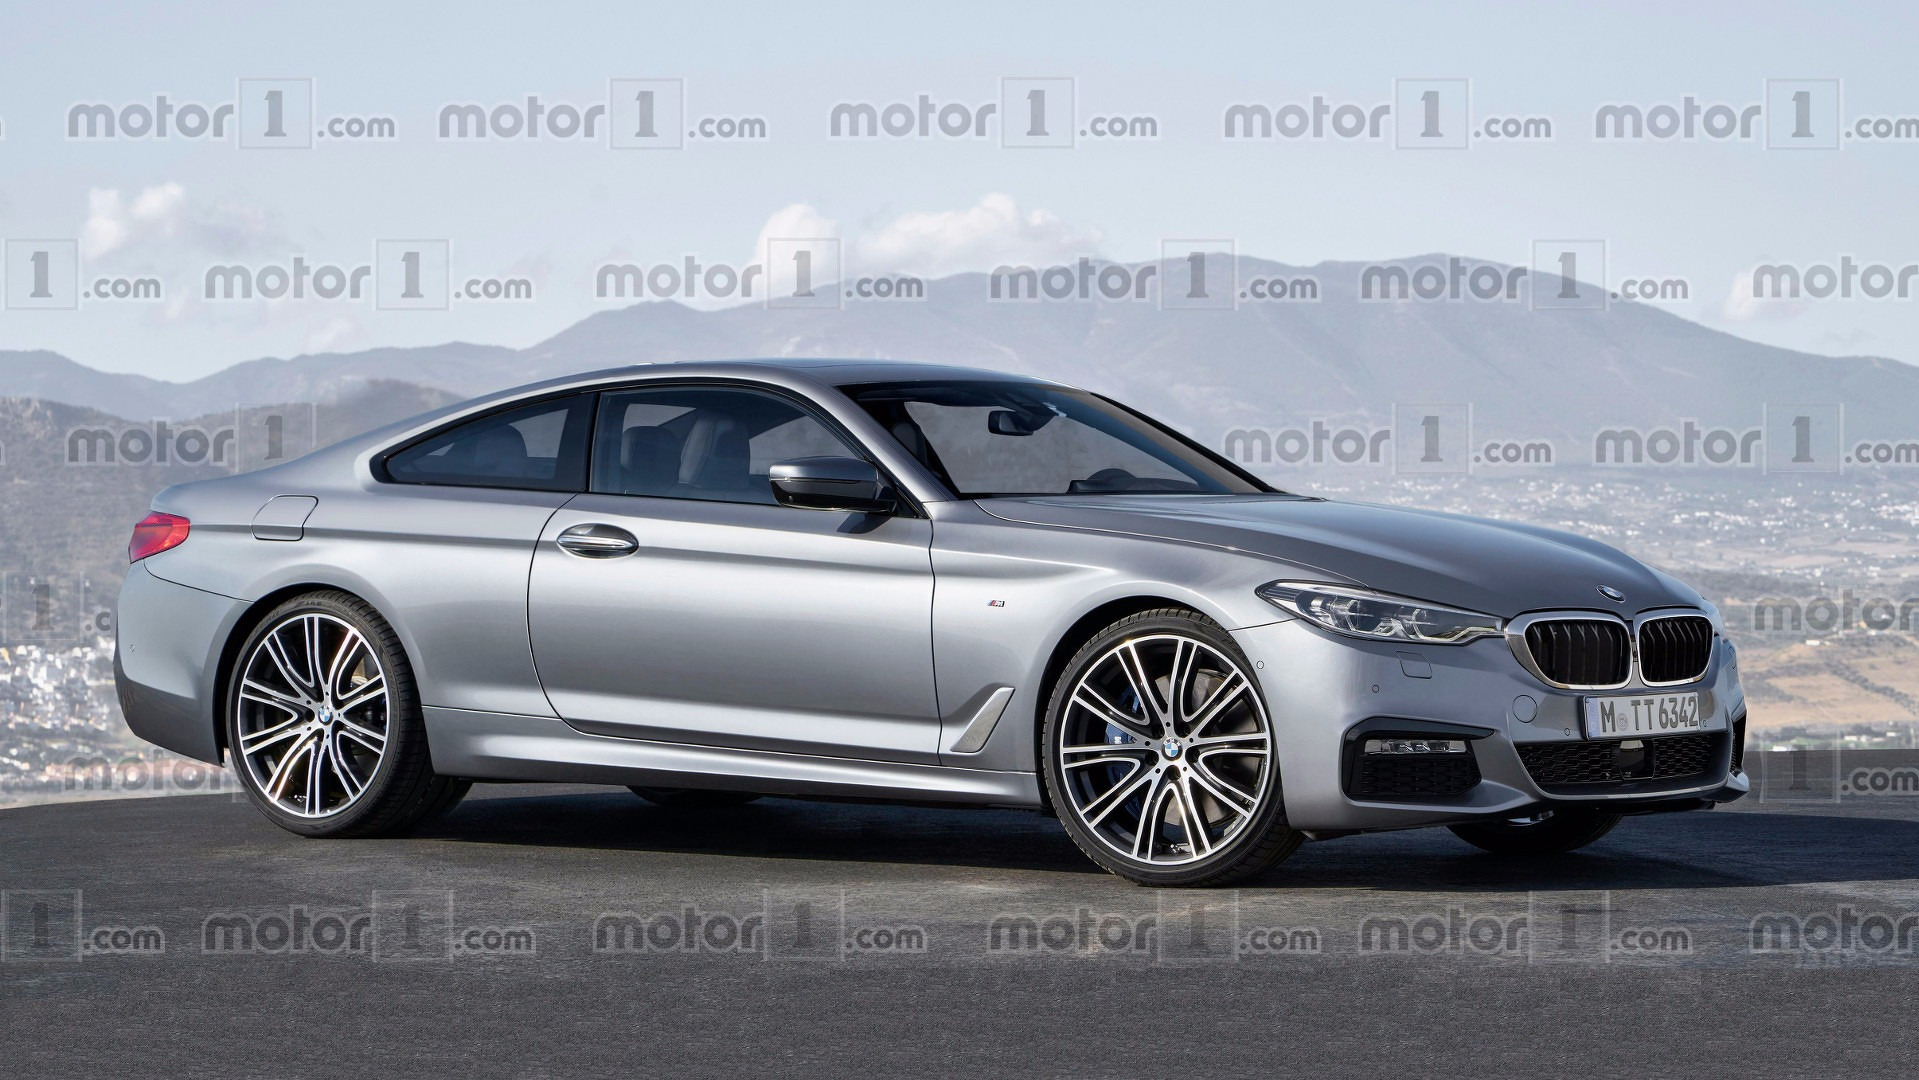 Could a new BMW 8 Series look like this